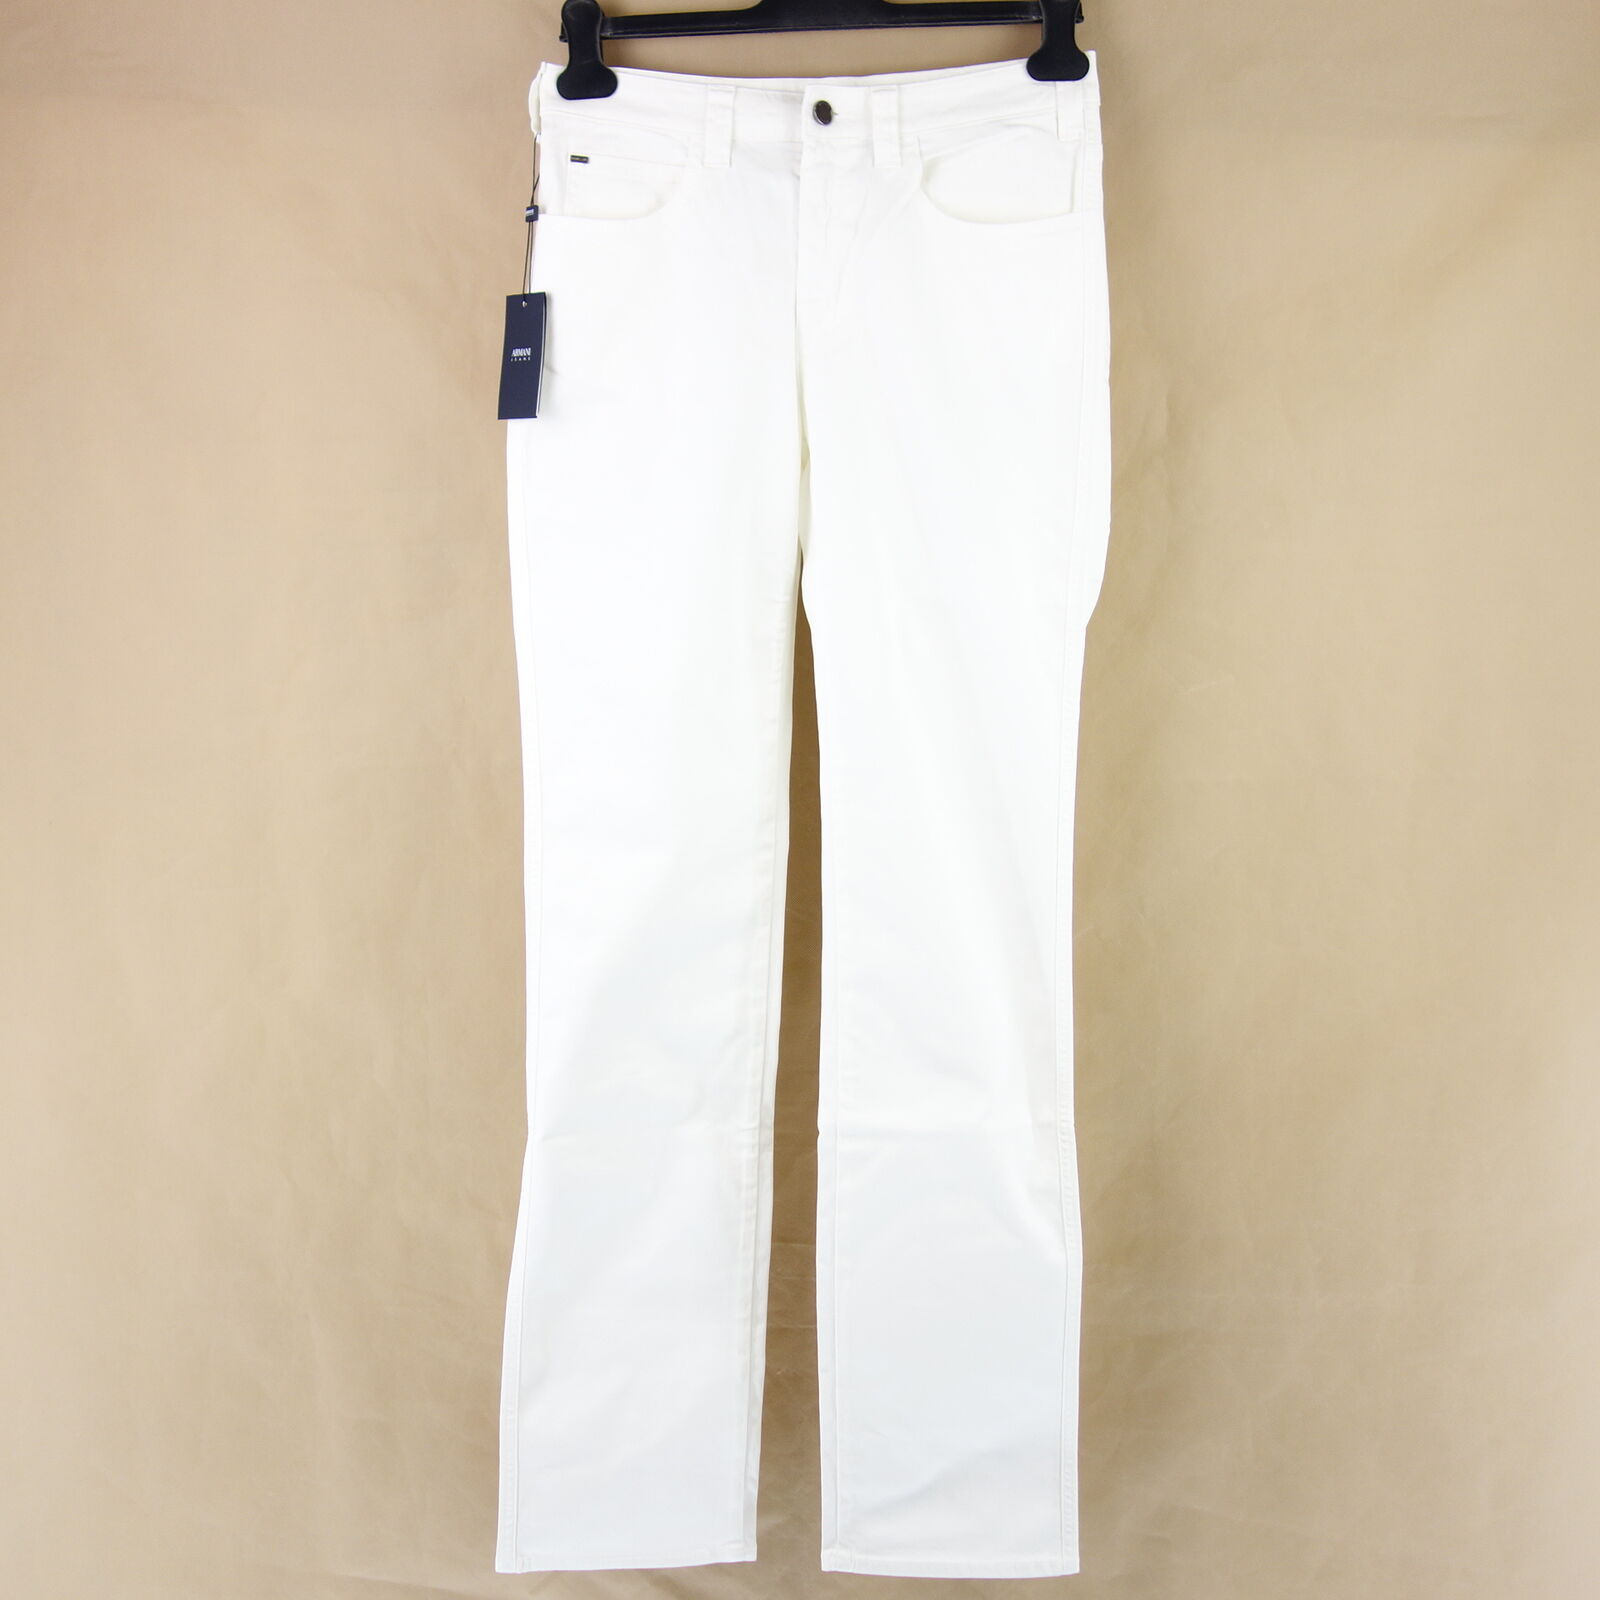 Armani Jeans Aj Women's Trousers pink W31 Regular Fit White Denim Np 199 New